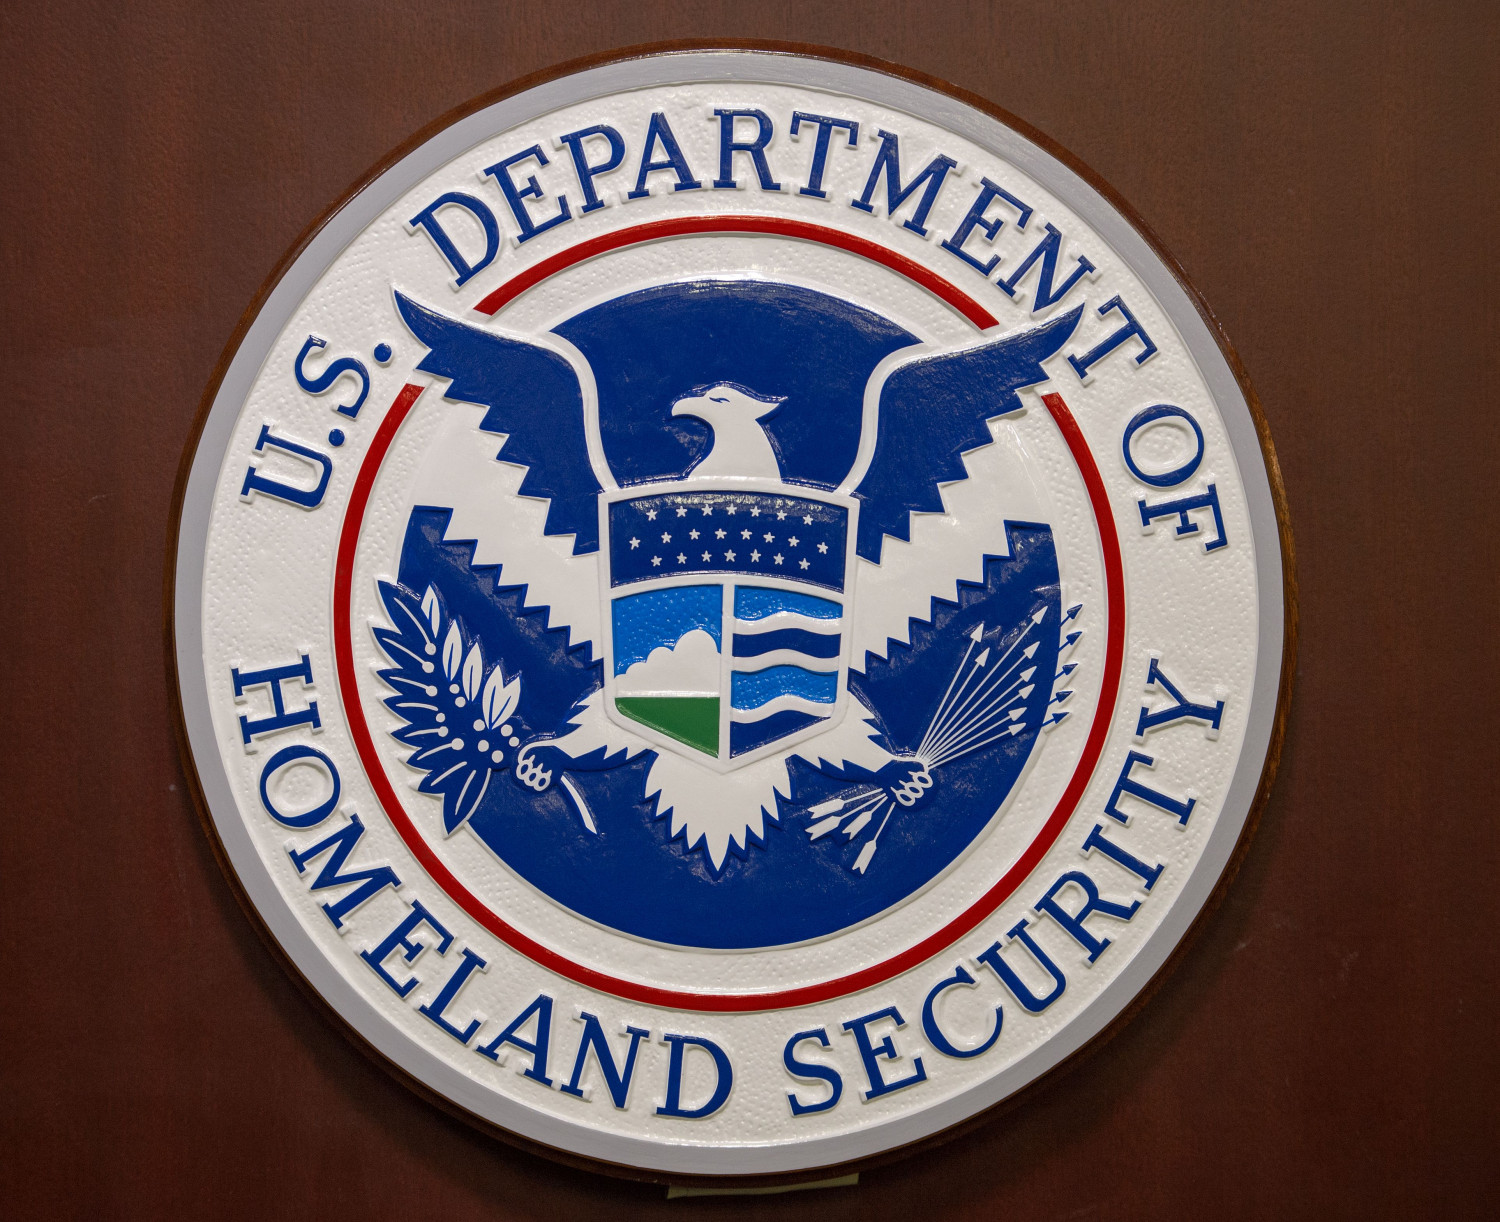 The Homeland Security seal